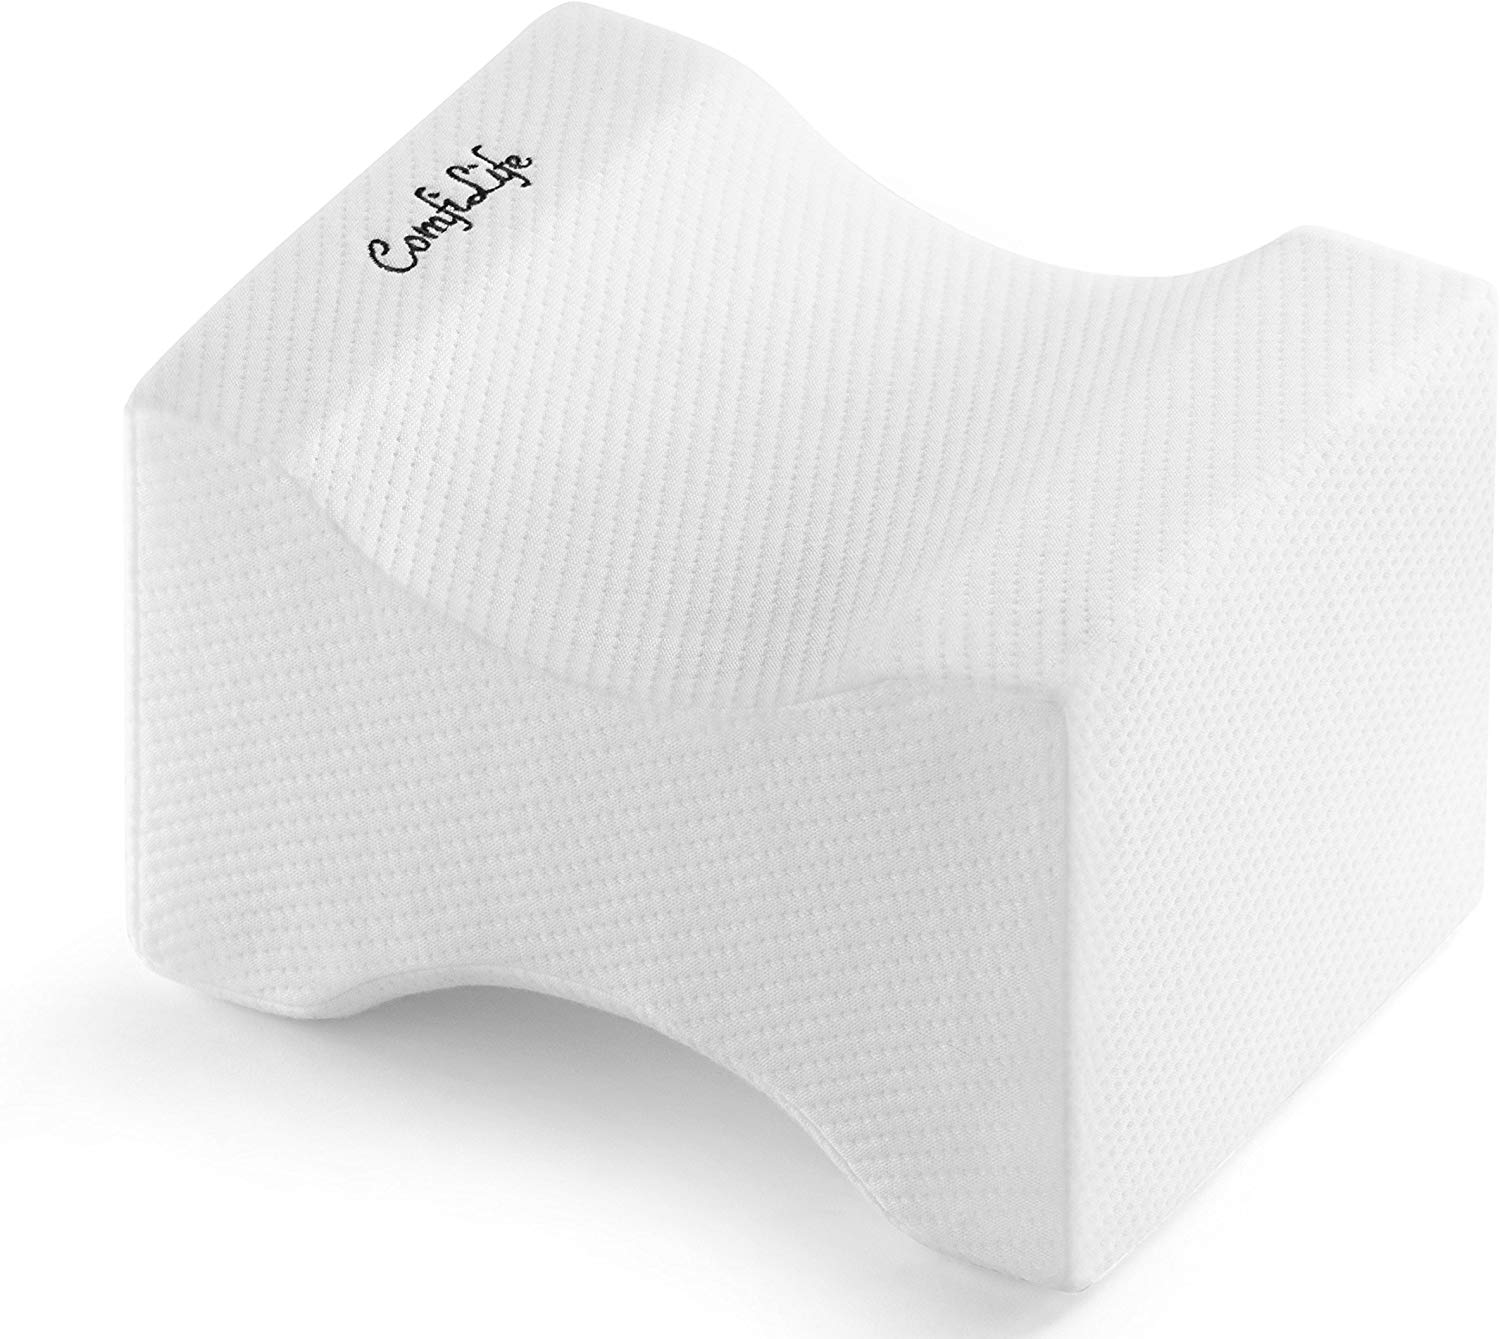 ComfiLife Best Orthopedic Pillow review by www.dailysleep.org